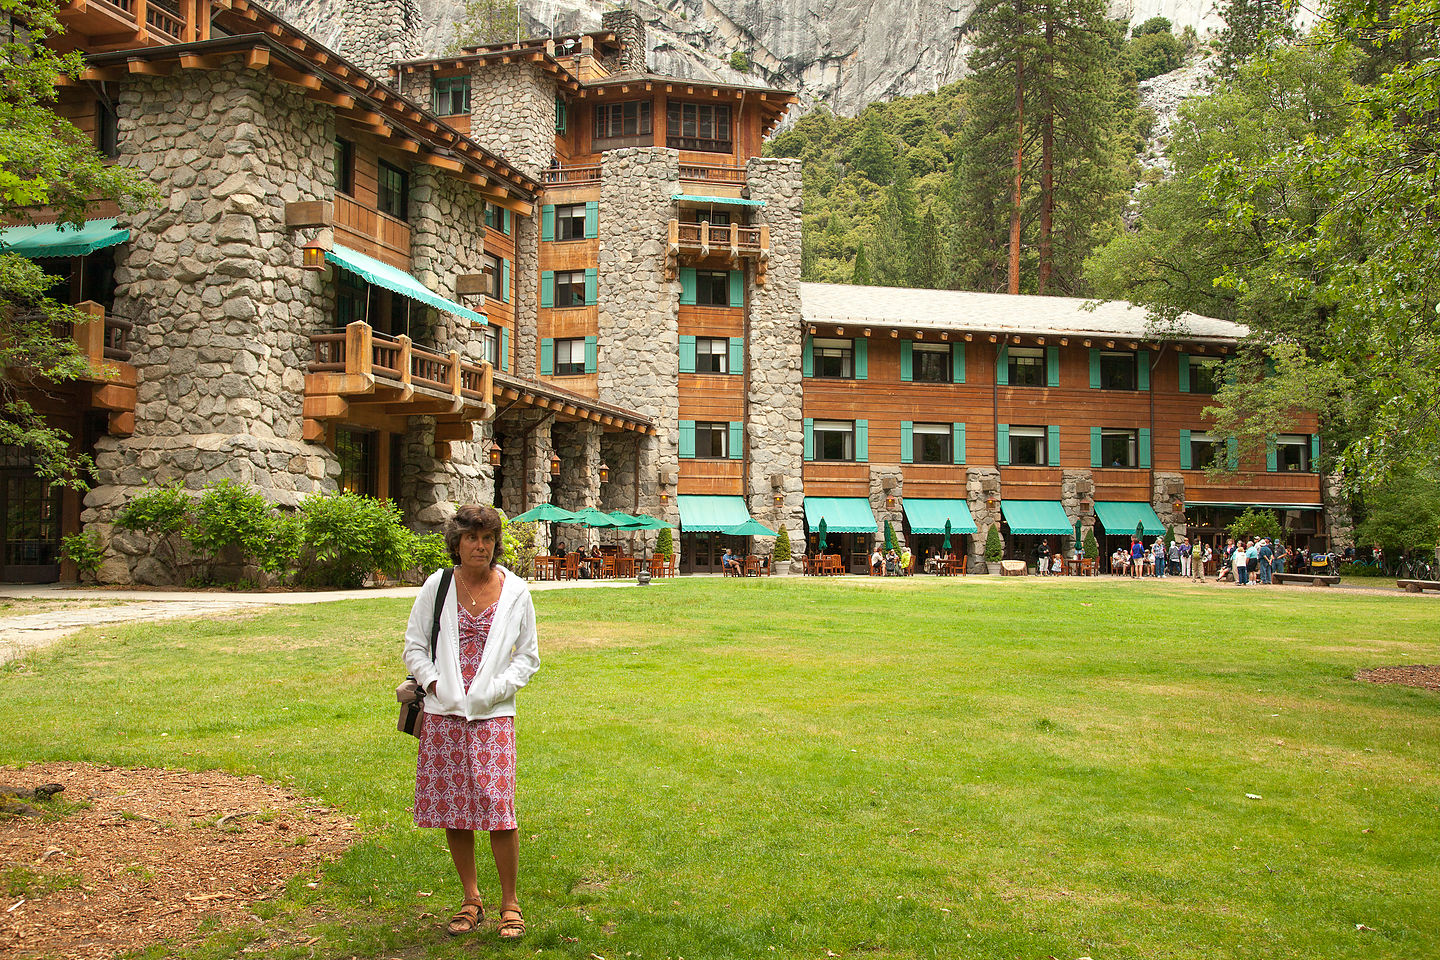 Lolo post lunch at the Ahwahnee